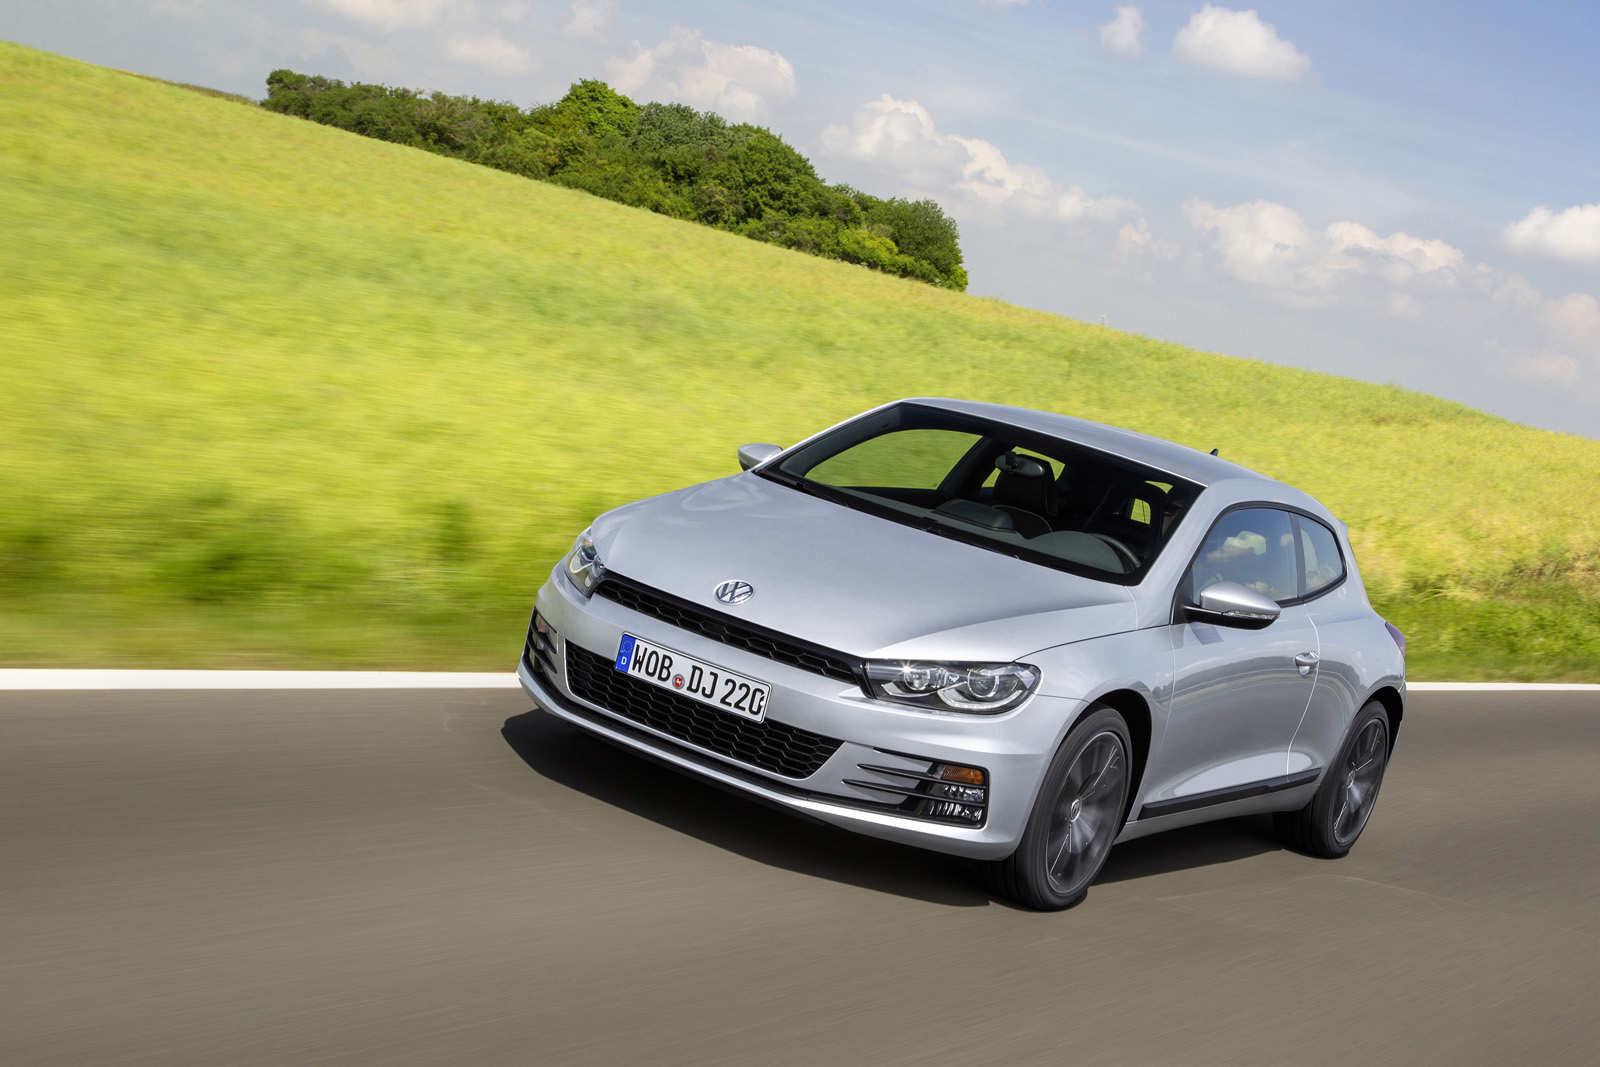 2014 volkswagen scirocco coupe facelift launched details. Black Bedroom Furniture Sets. Home Design Ideas